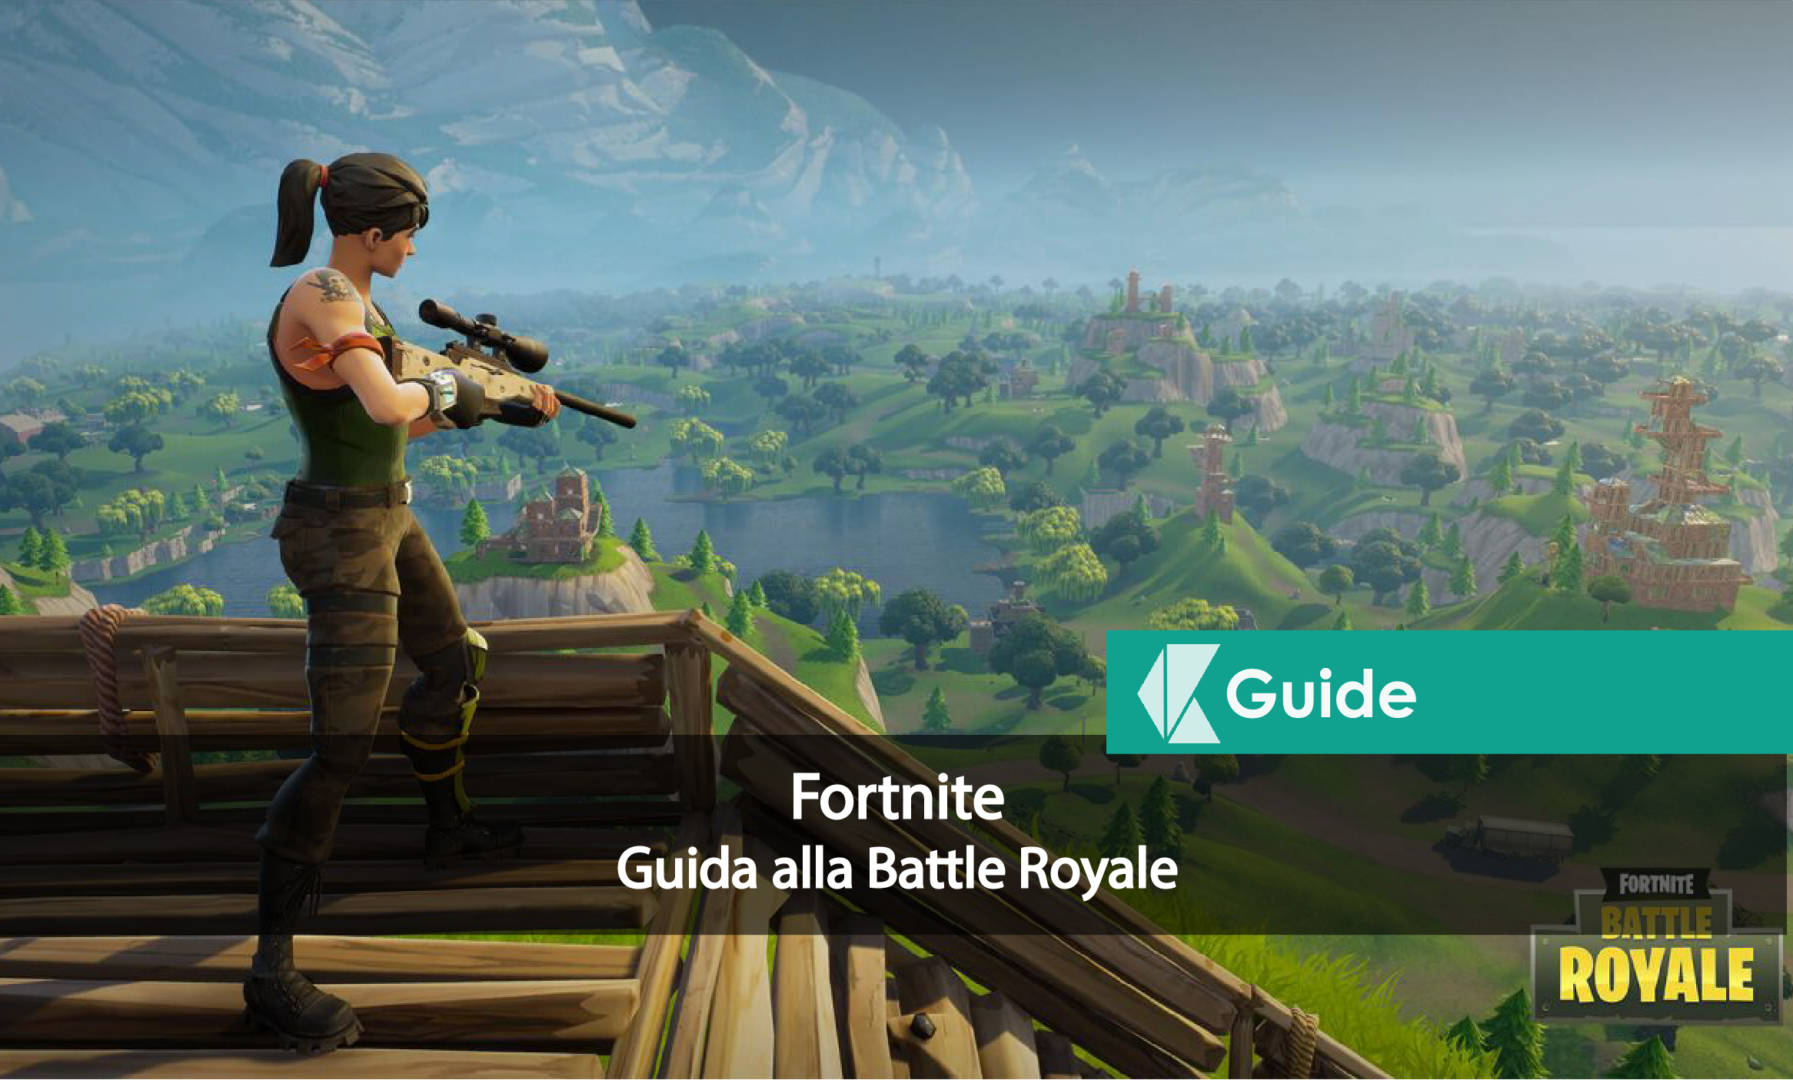 Fortnite Guida Alla Battle Royale 17k Group